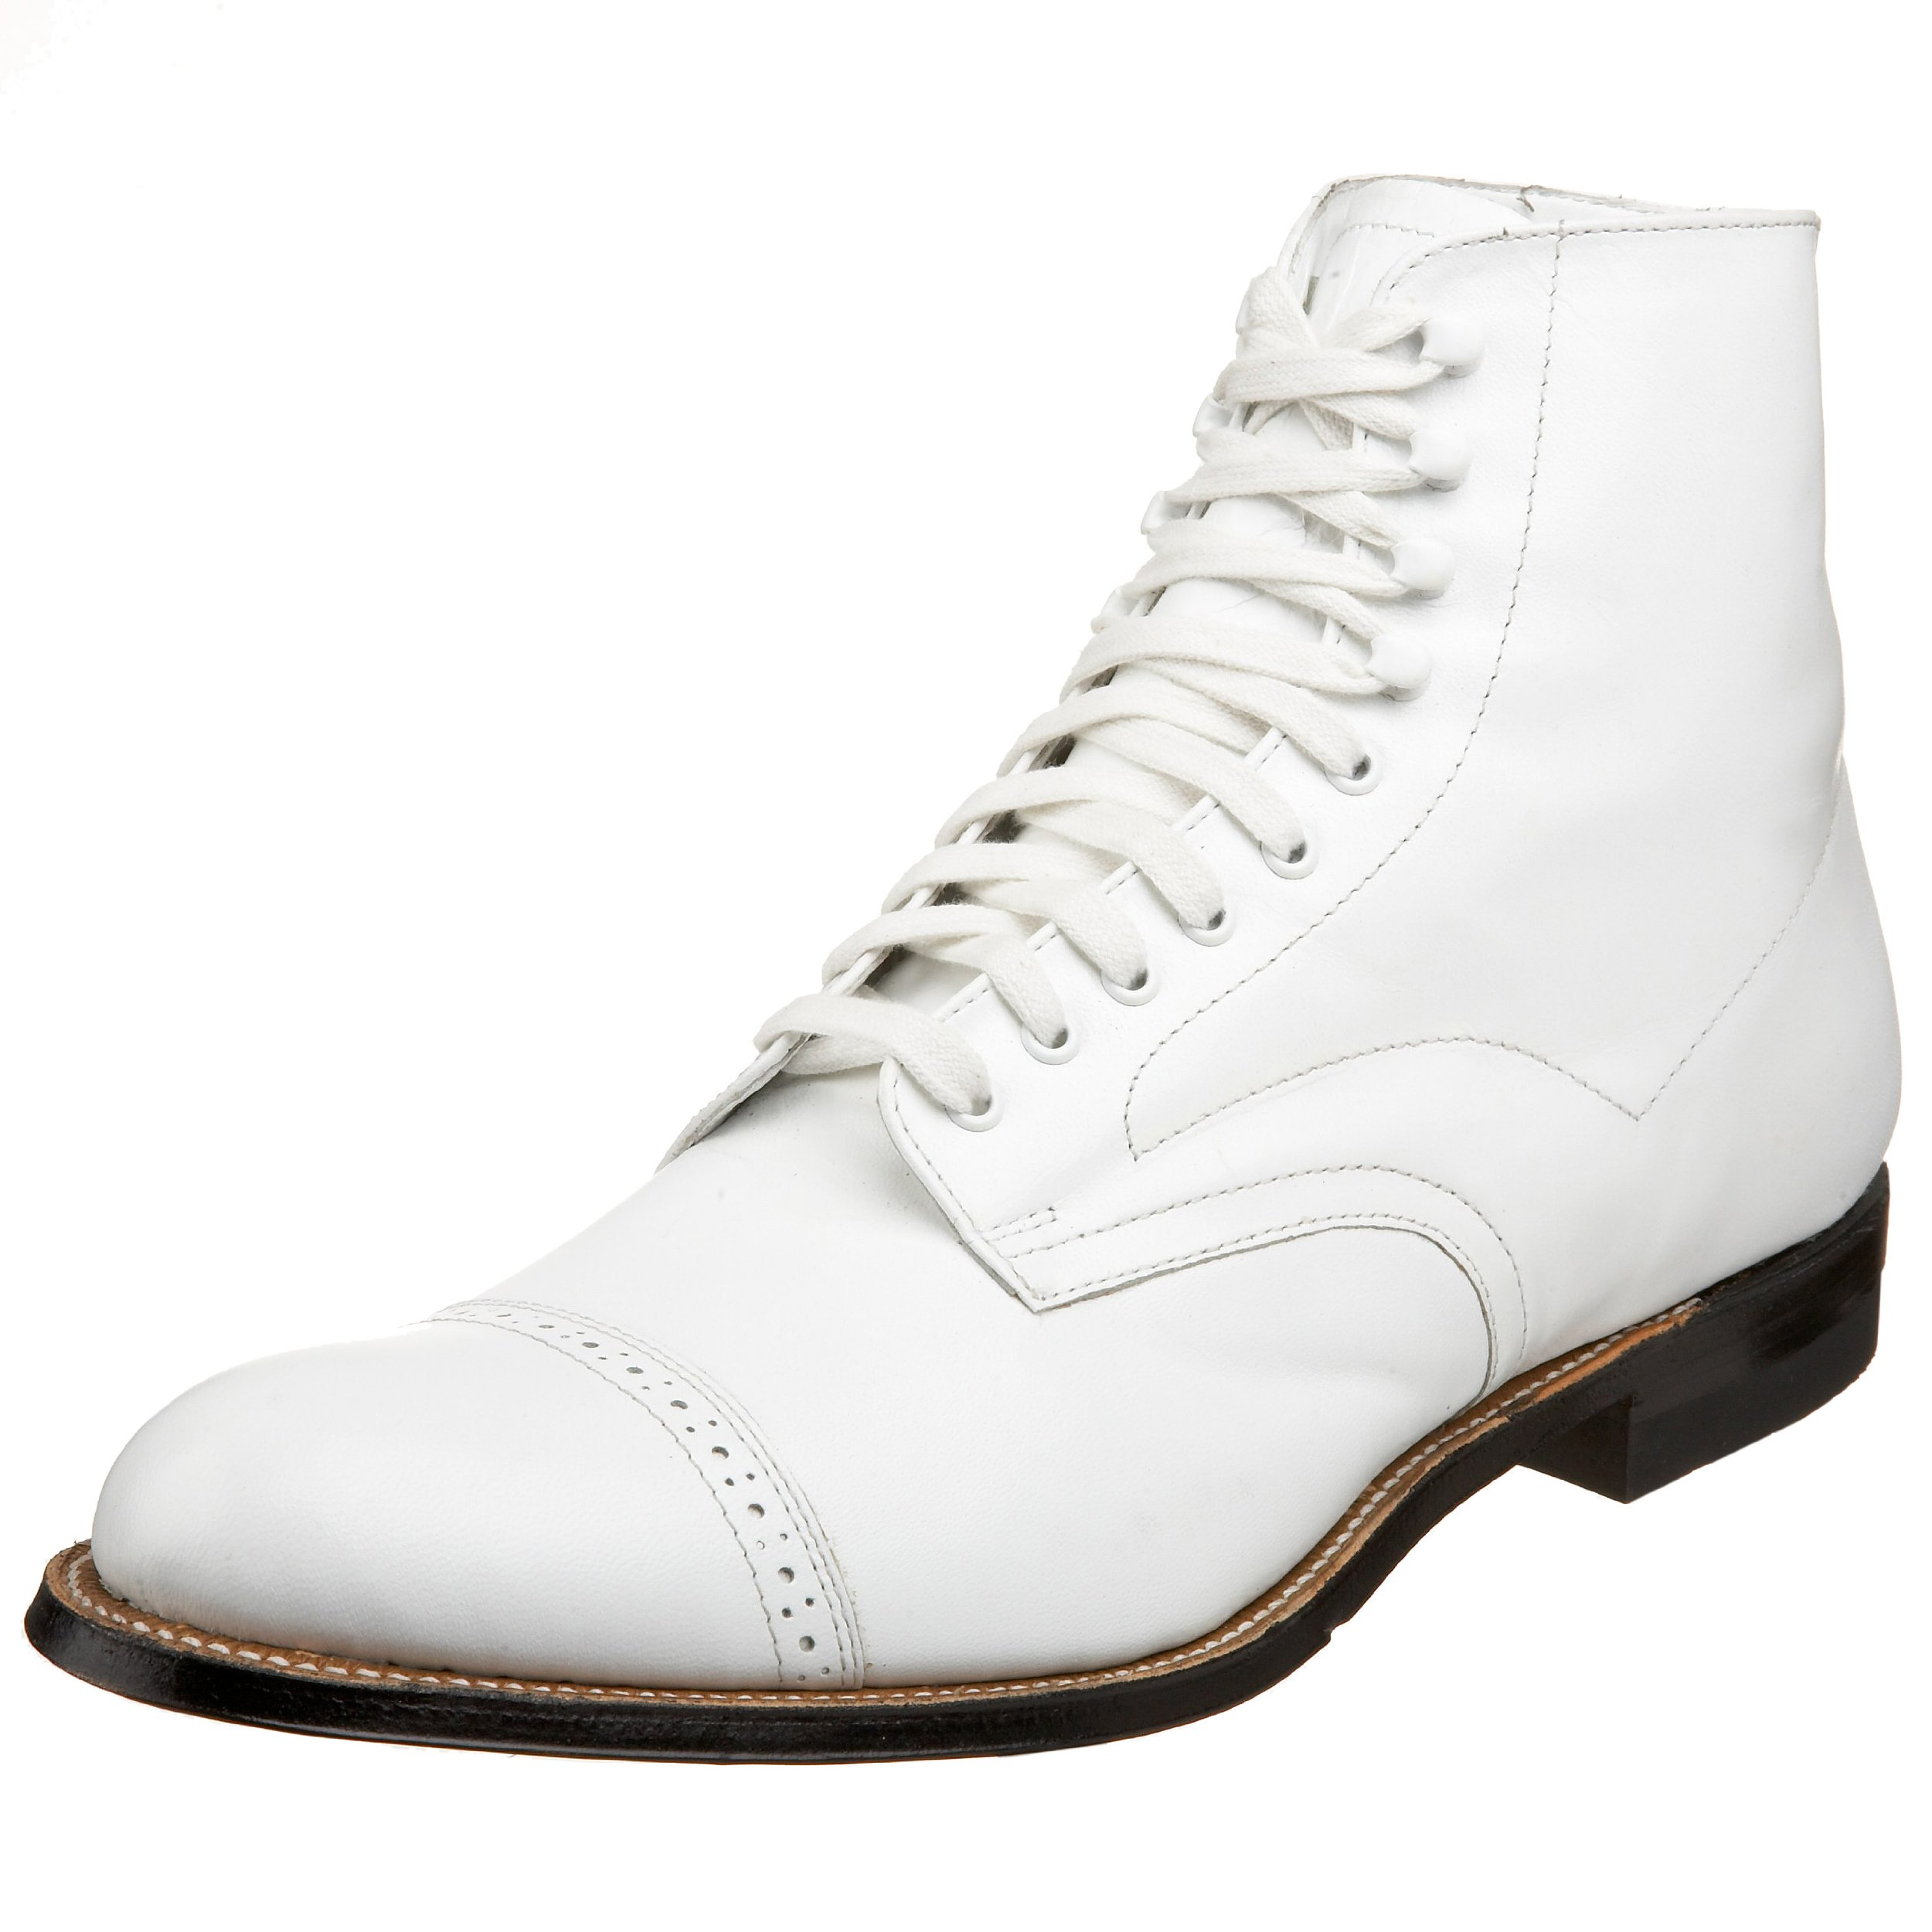 Stacy Adams Men's Madison Cap-Toe Boot,White,9.5 D